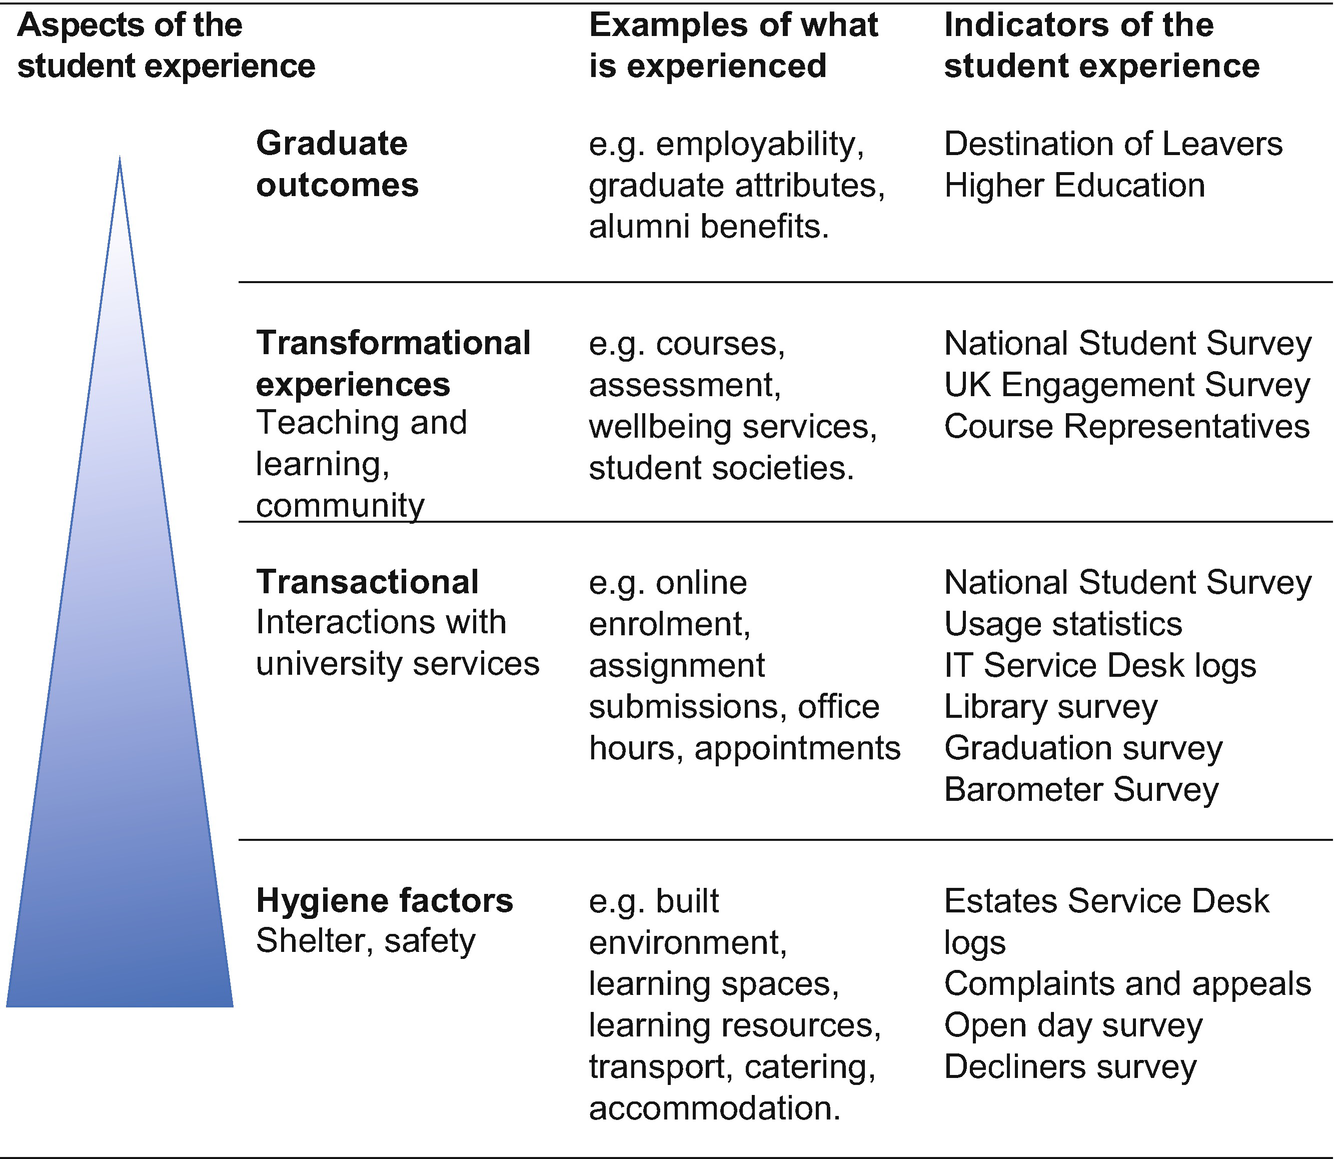 Evaluating the Student Experience: A Critical Review of the Use of